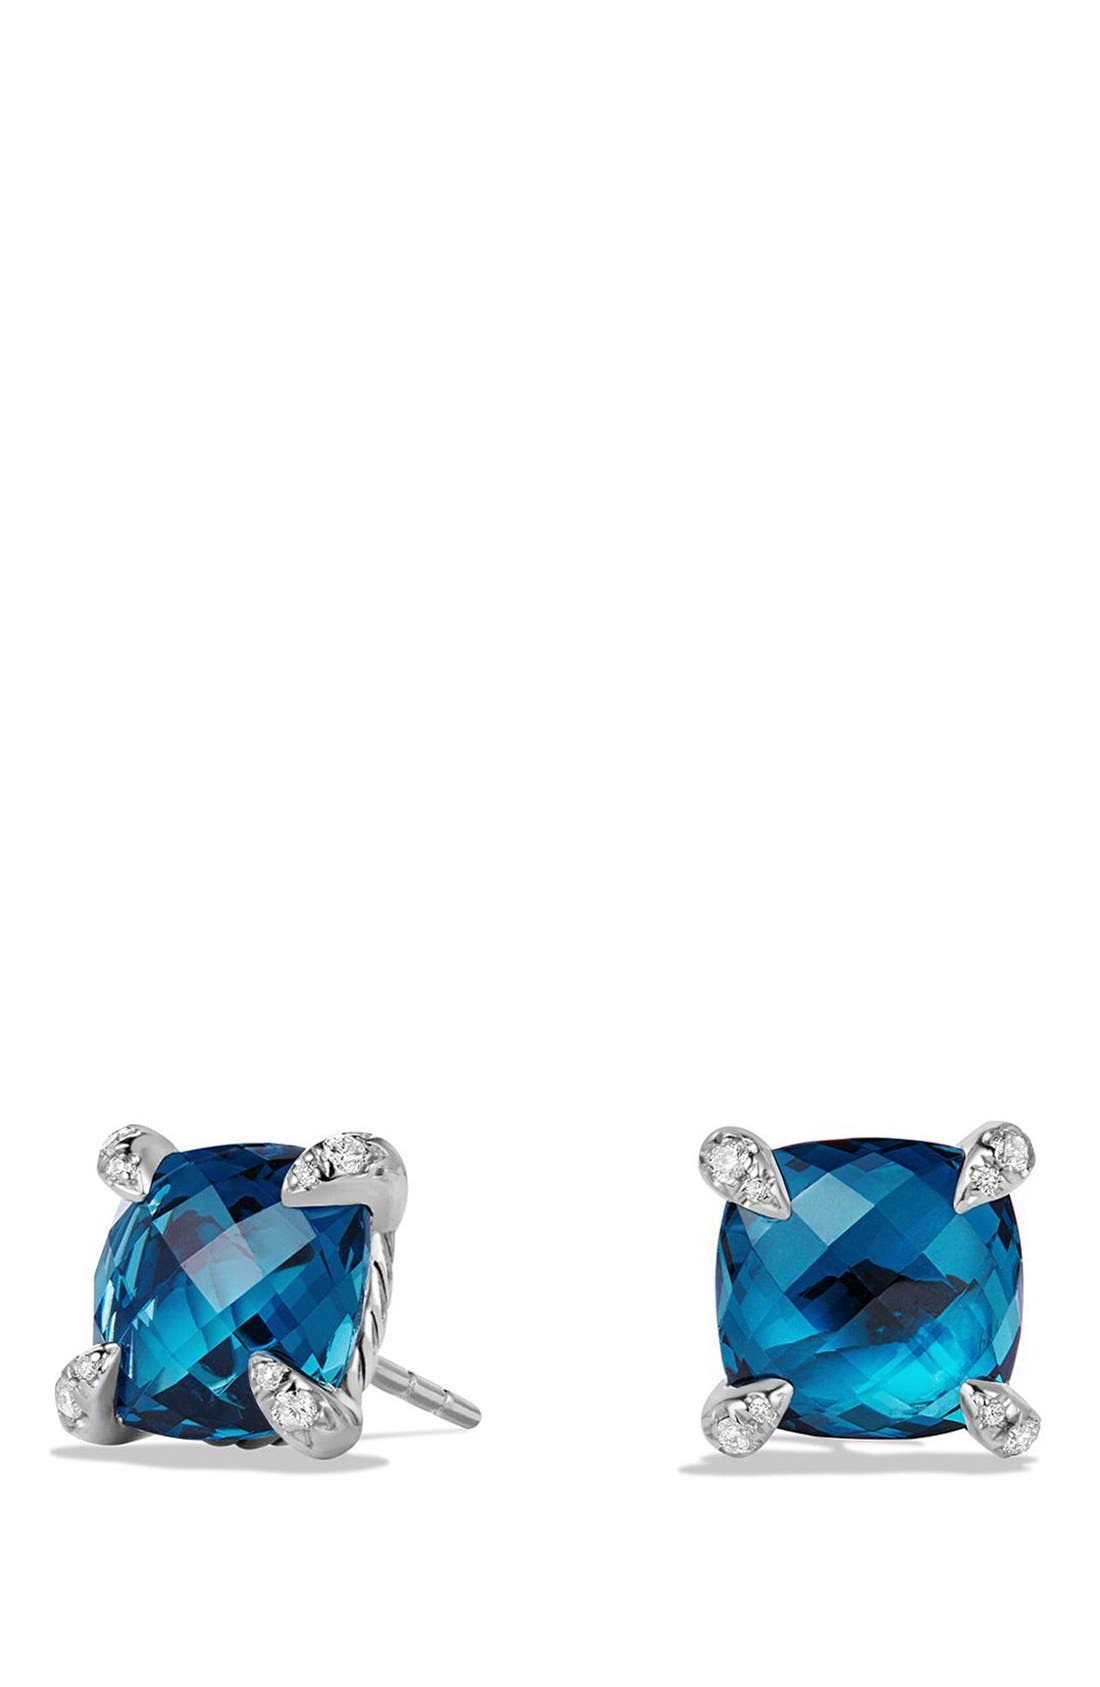 DAVID YURMAN 'Châtelaine' Earrings with Semiprecious Stones and